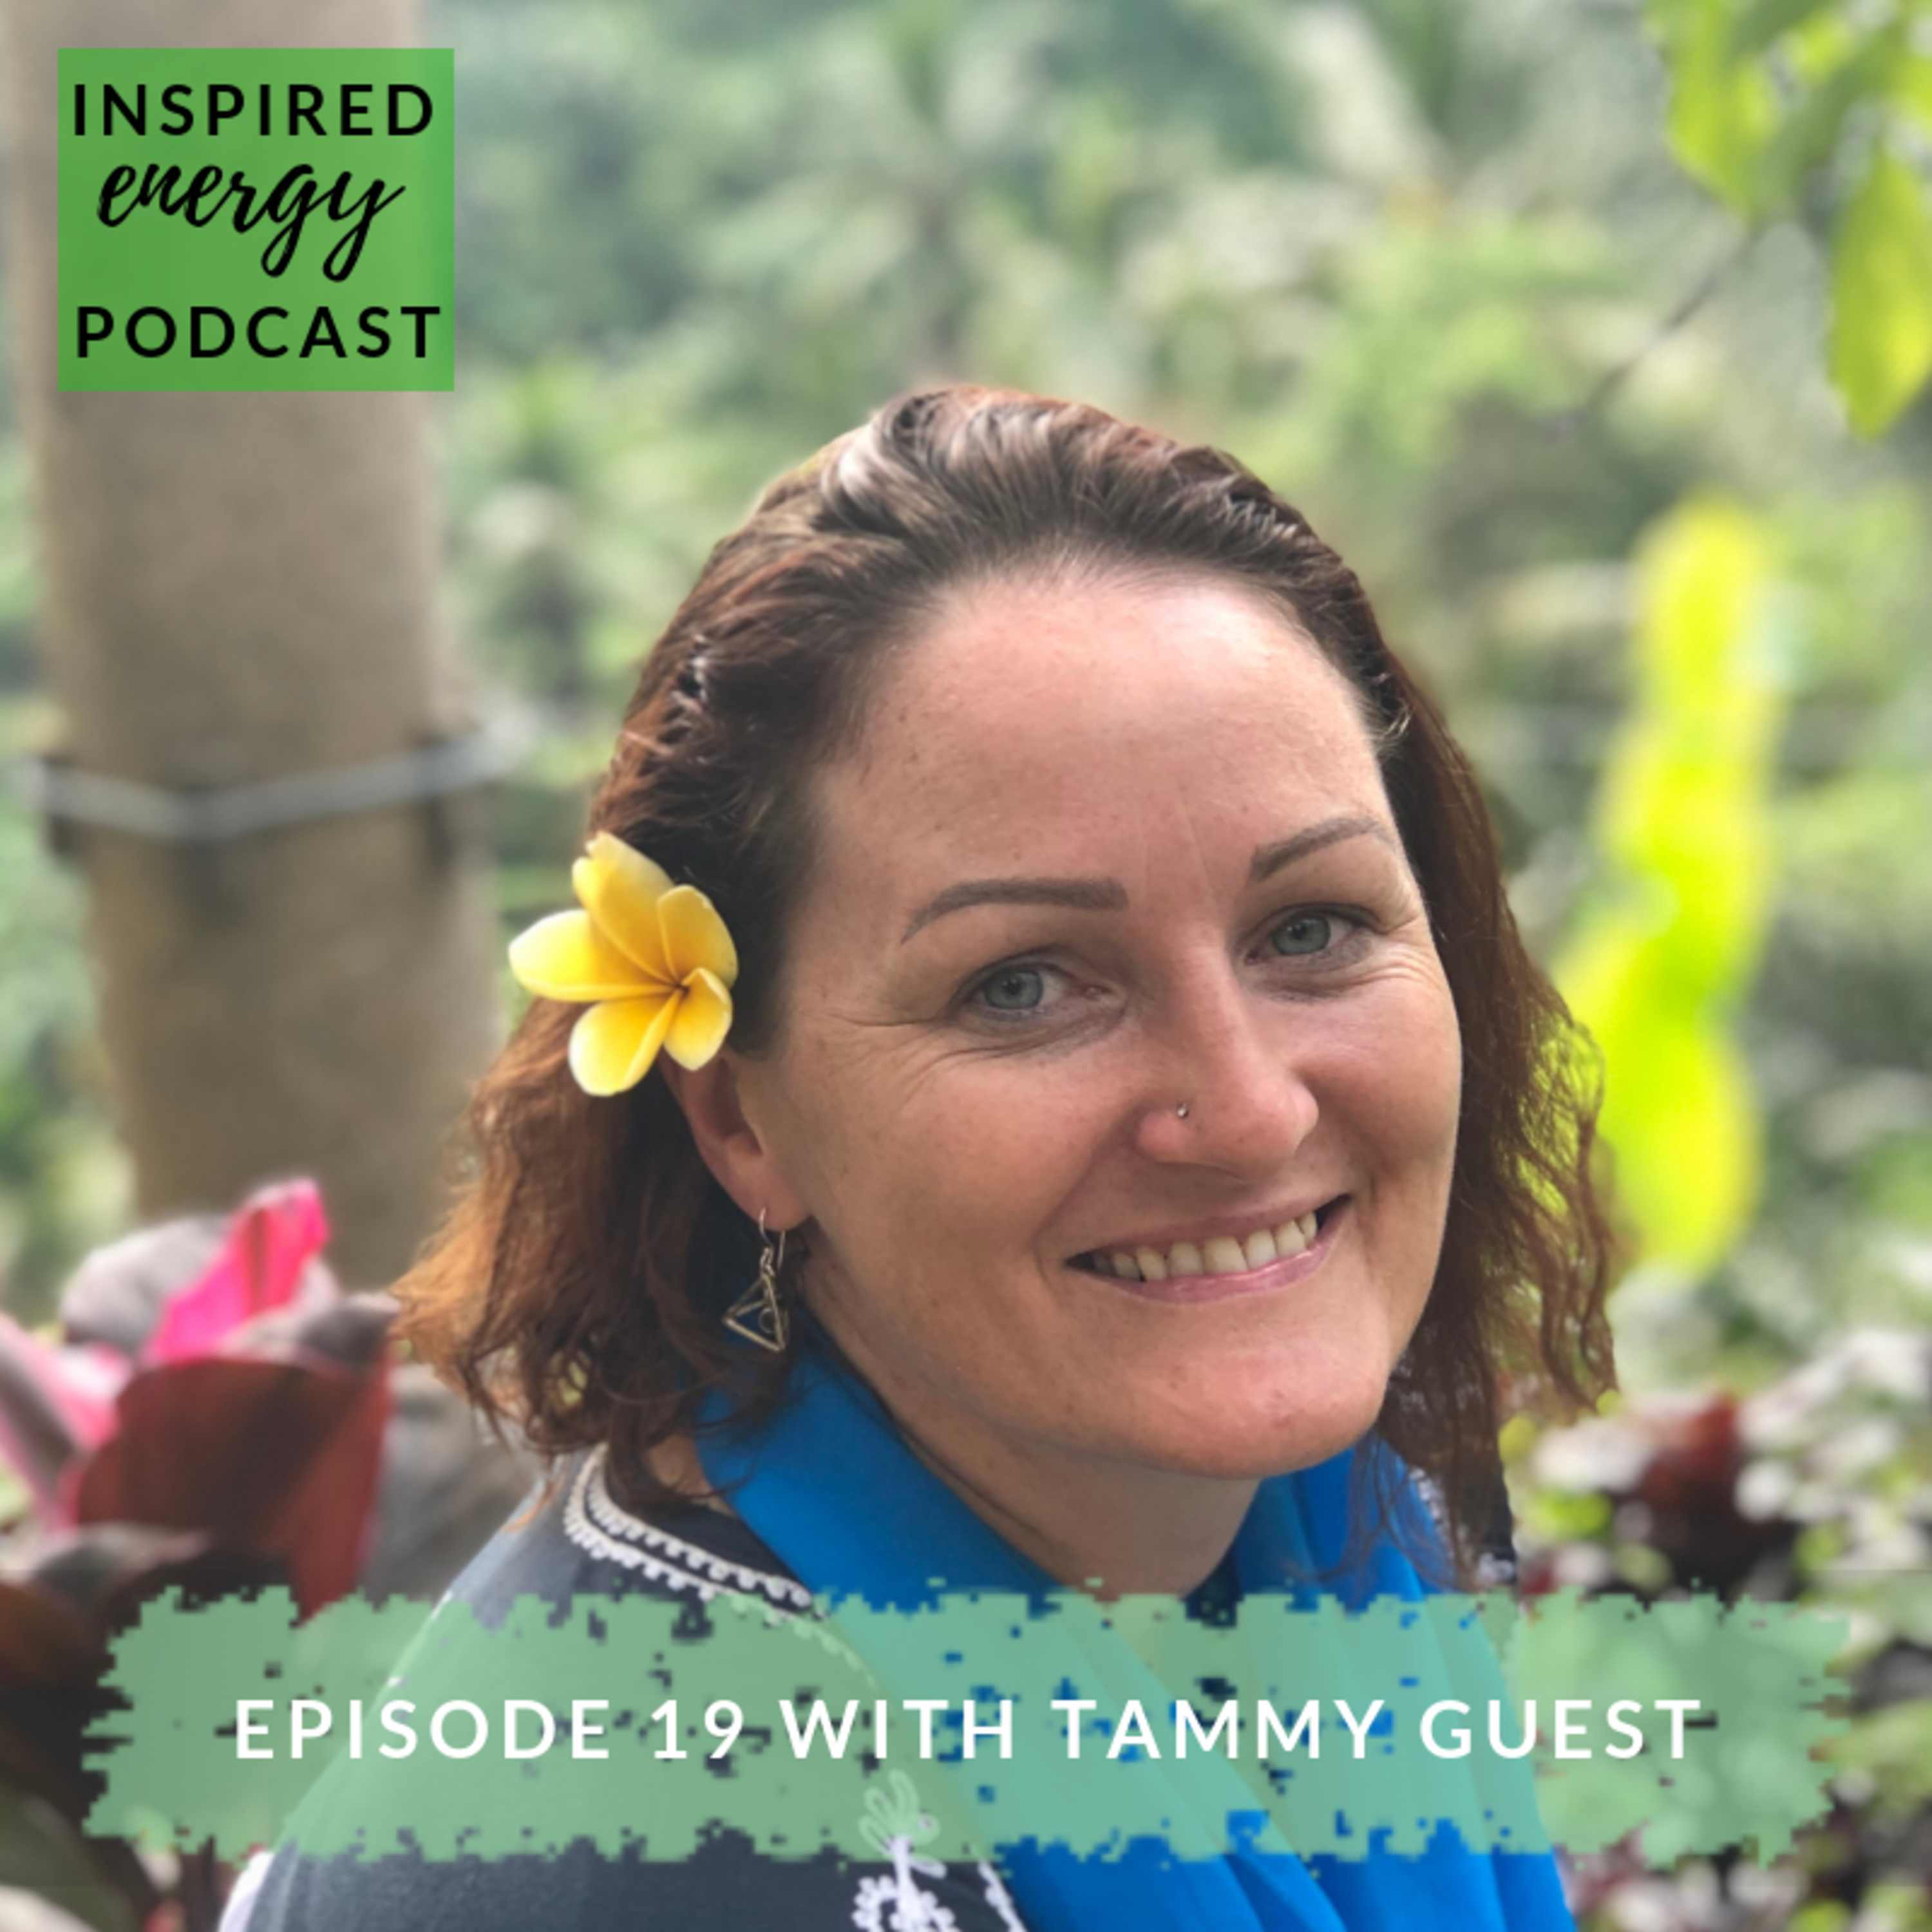 Episode 19 - Tammy Guest (Natupreneur Business Mentor)